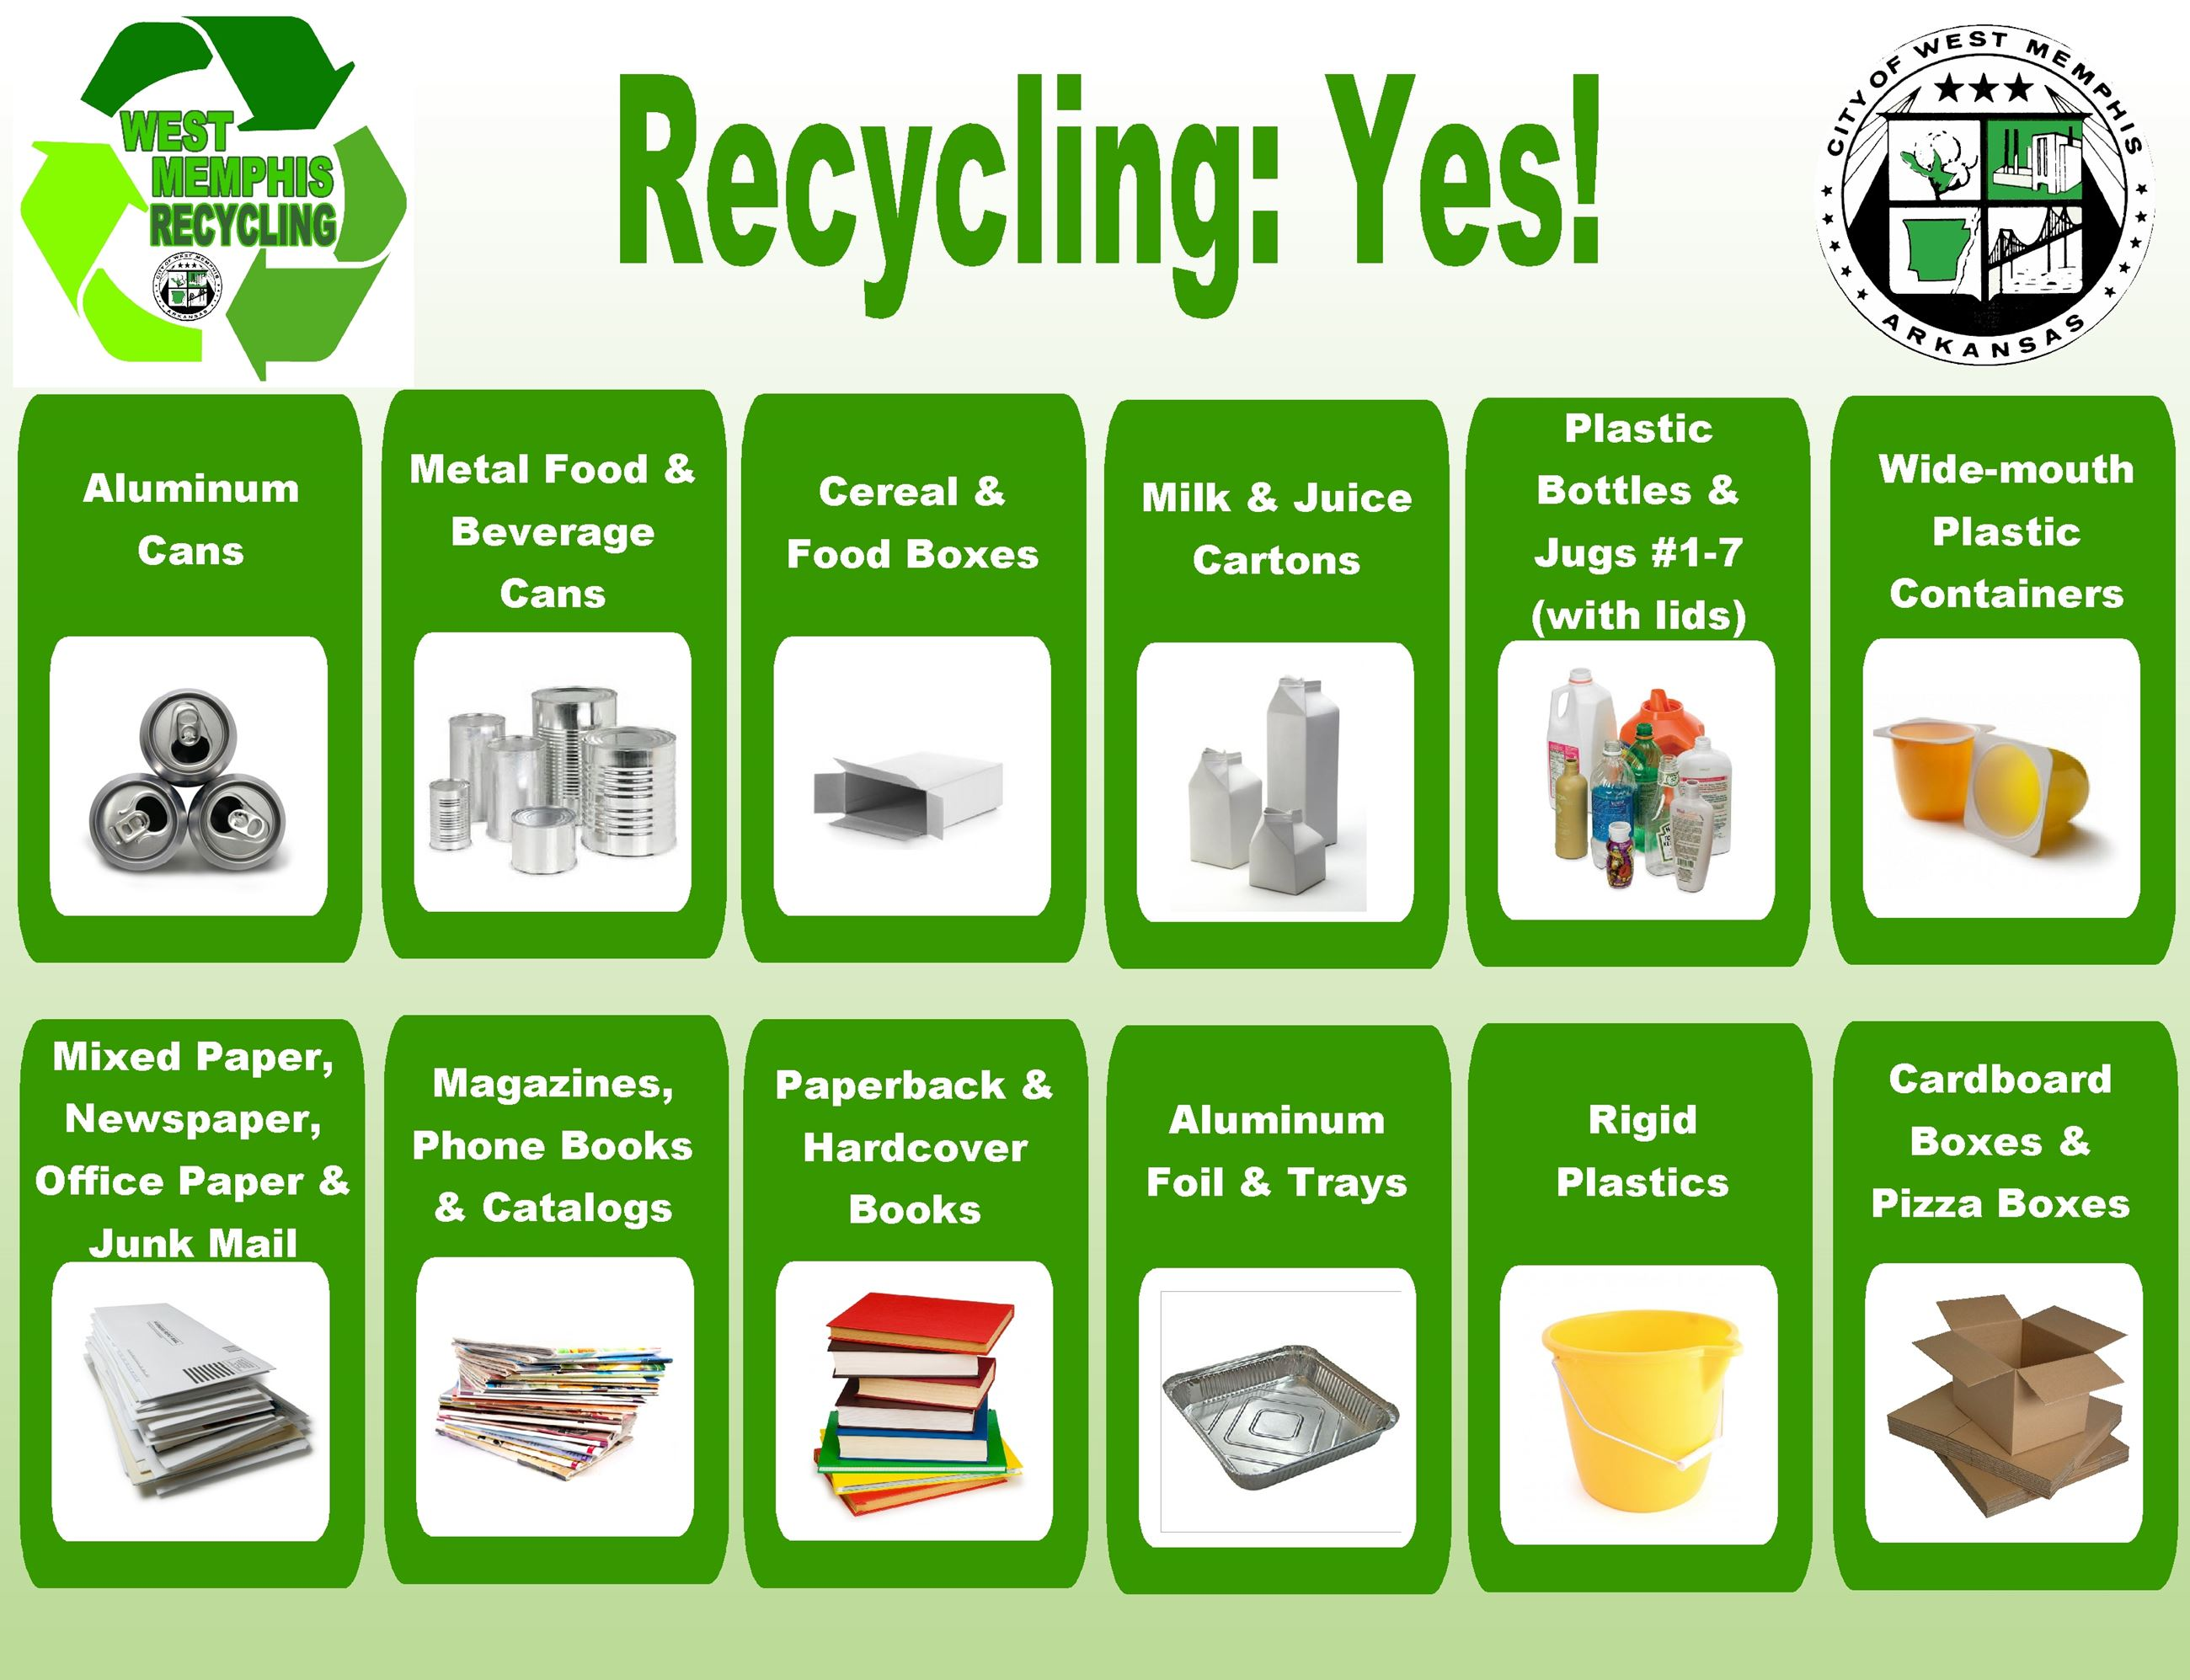 Recycling, Yes! Poster with Picture Examples of Items That Can Be Recycled